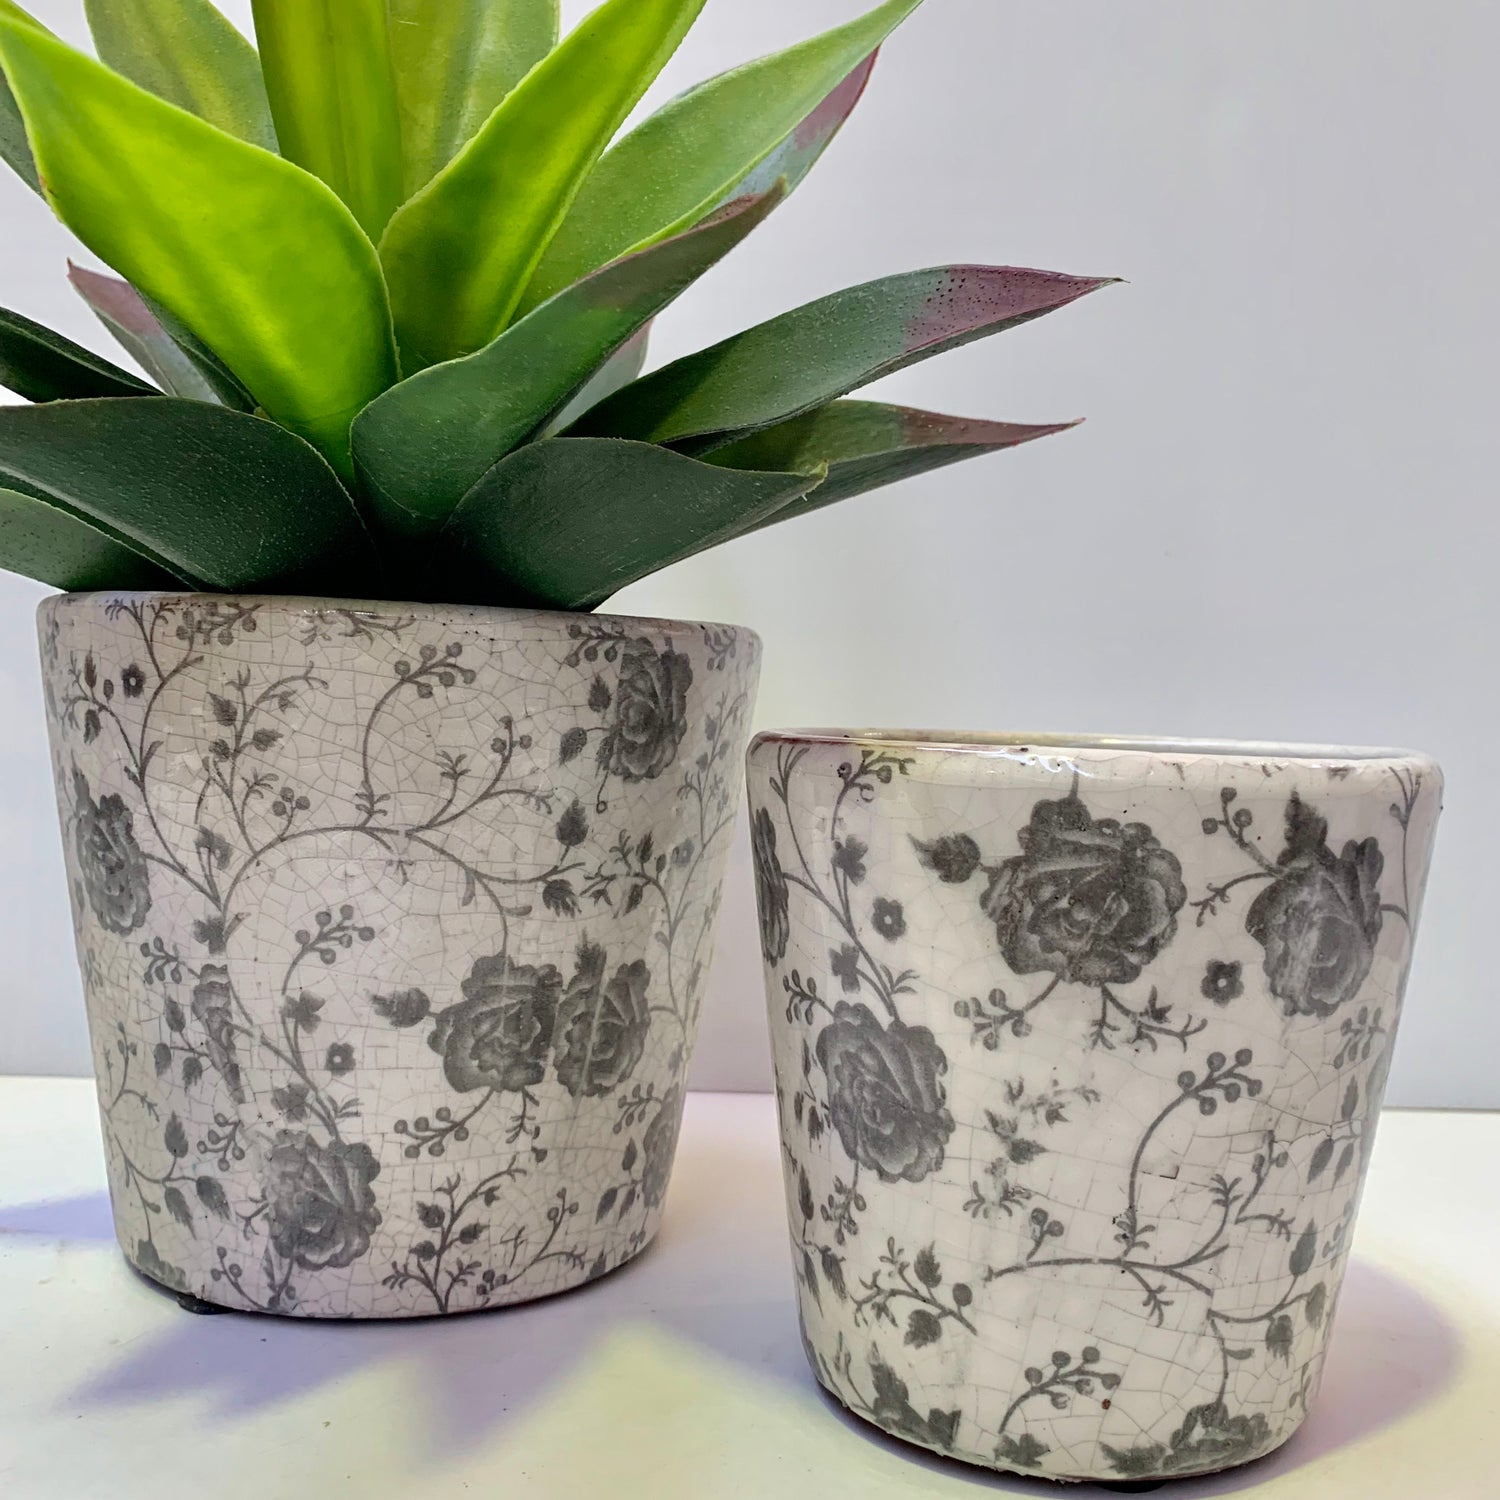 Rustic Round Pots - Spring Fields